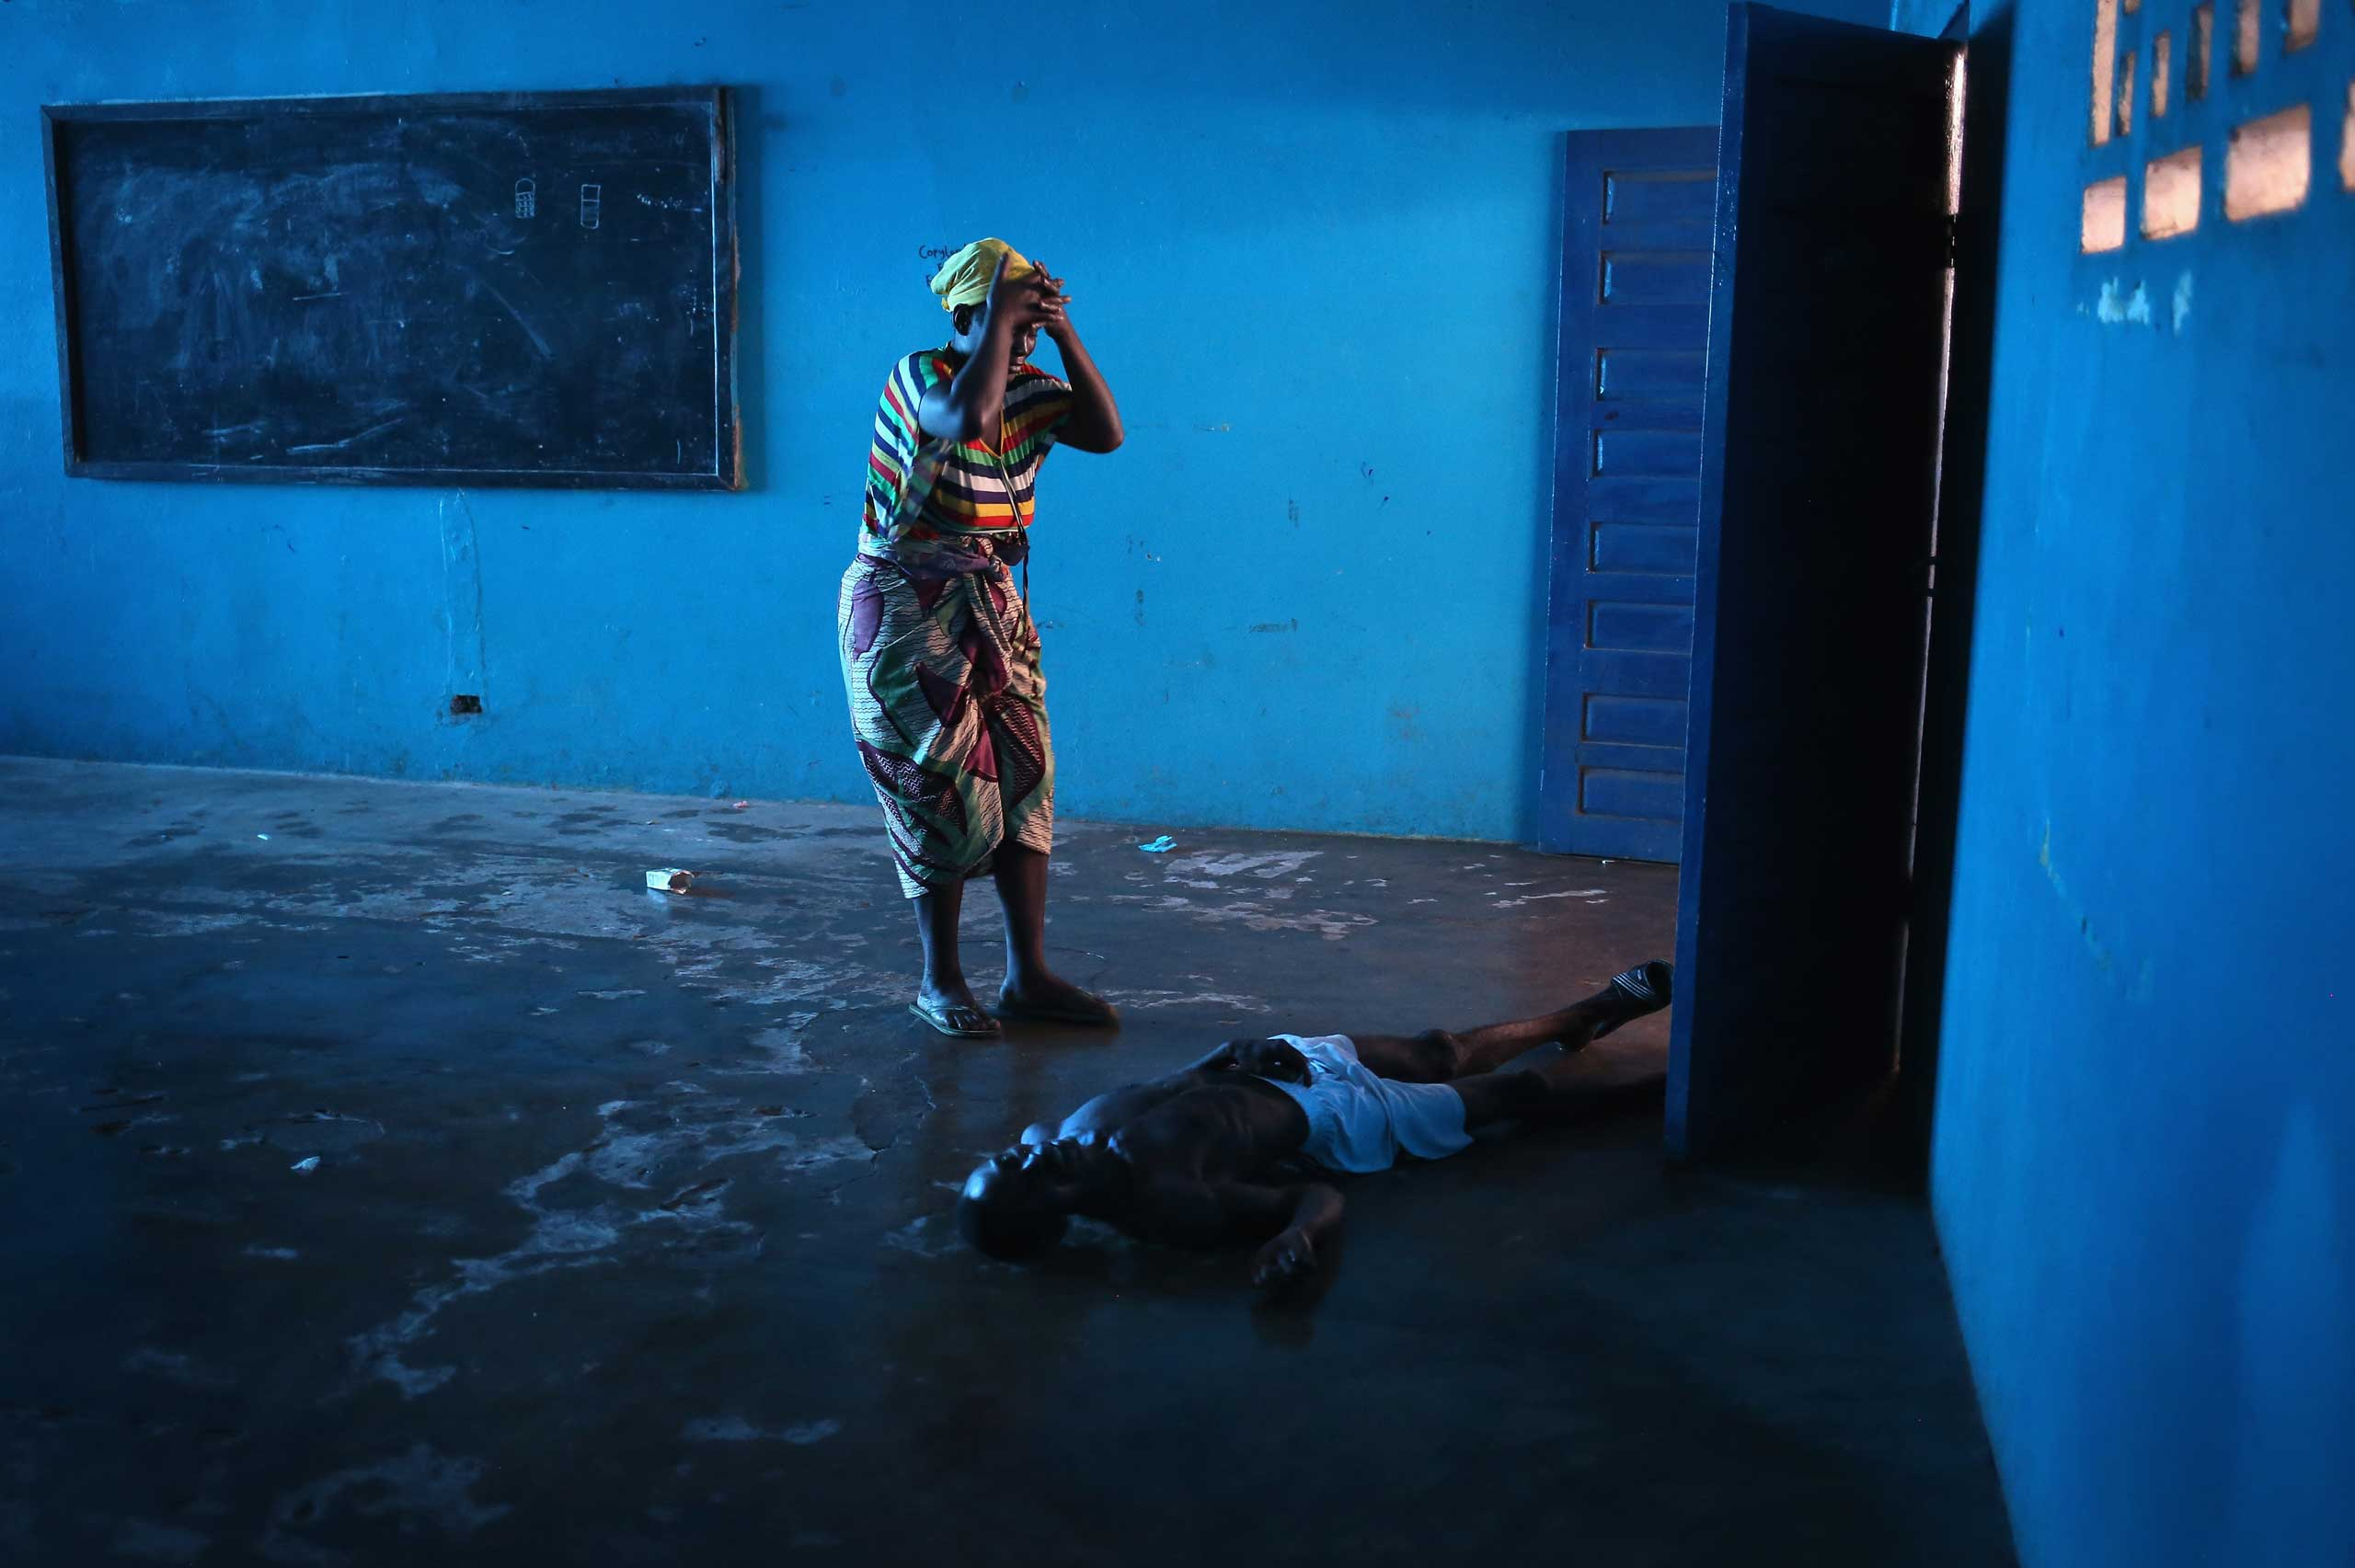 Umu Fambulle stands over her husband Ibrahim after he staggered and fell, knocking him unconscious in an Ebola ward on Aug. 15, 2014 in Monrovia.